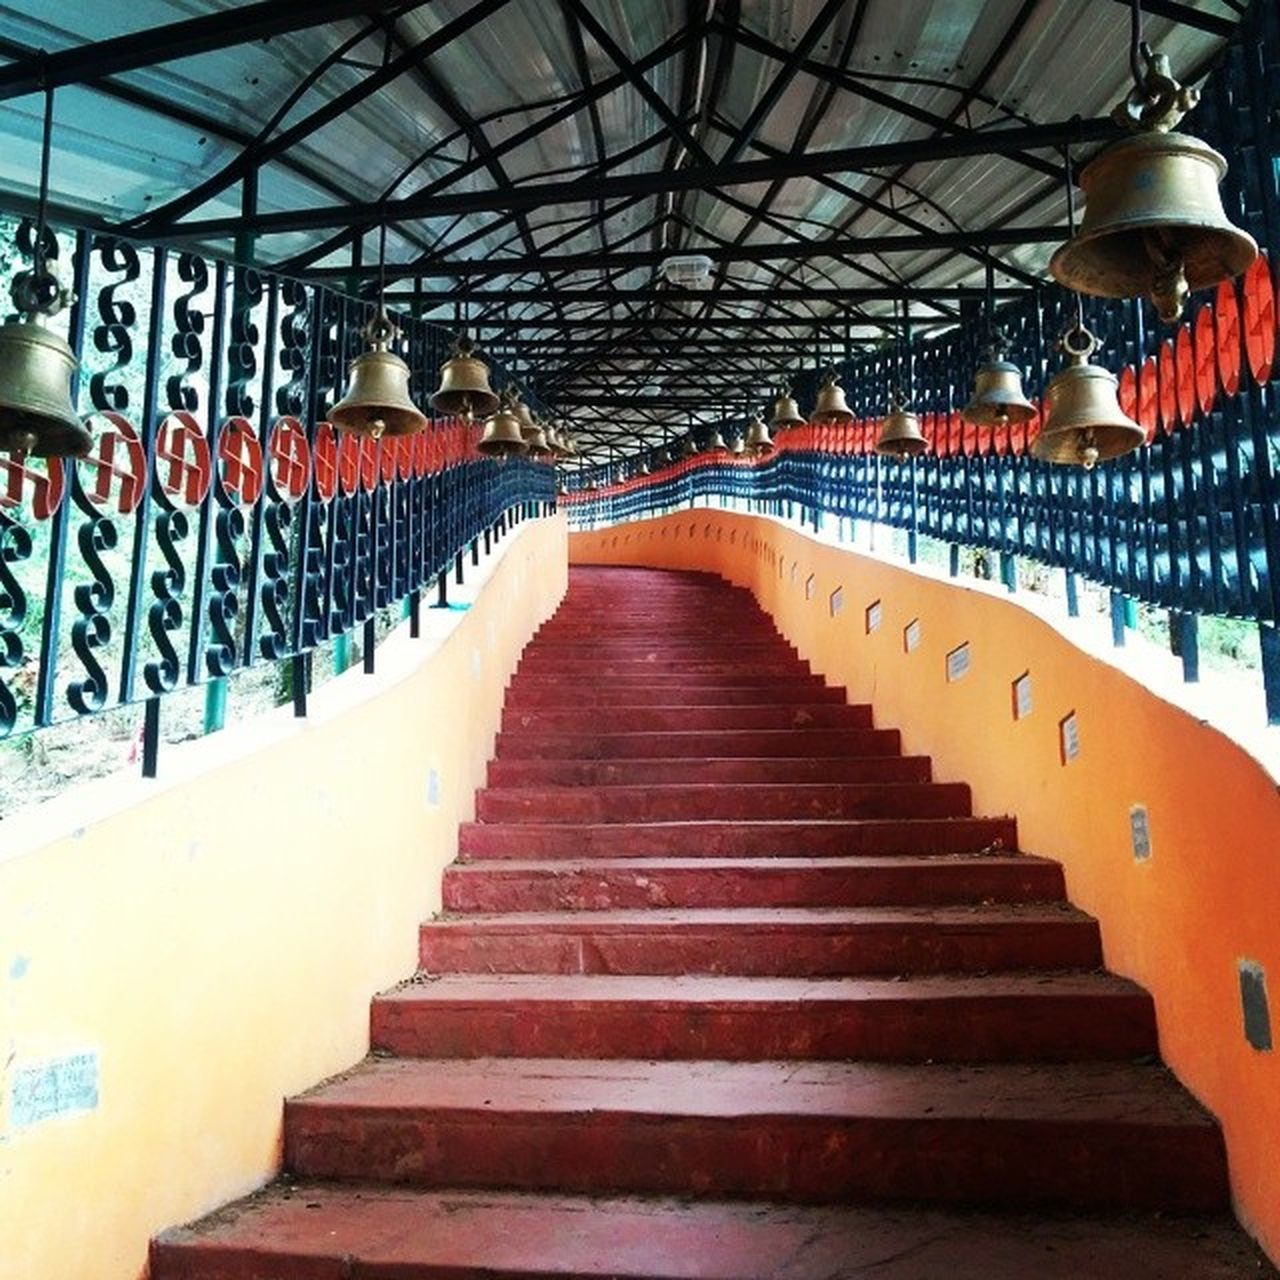 LOW ANGLE VIEW OF STEPS LEADING TOWARDS SUBWAY